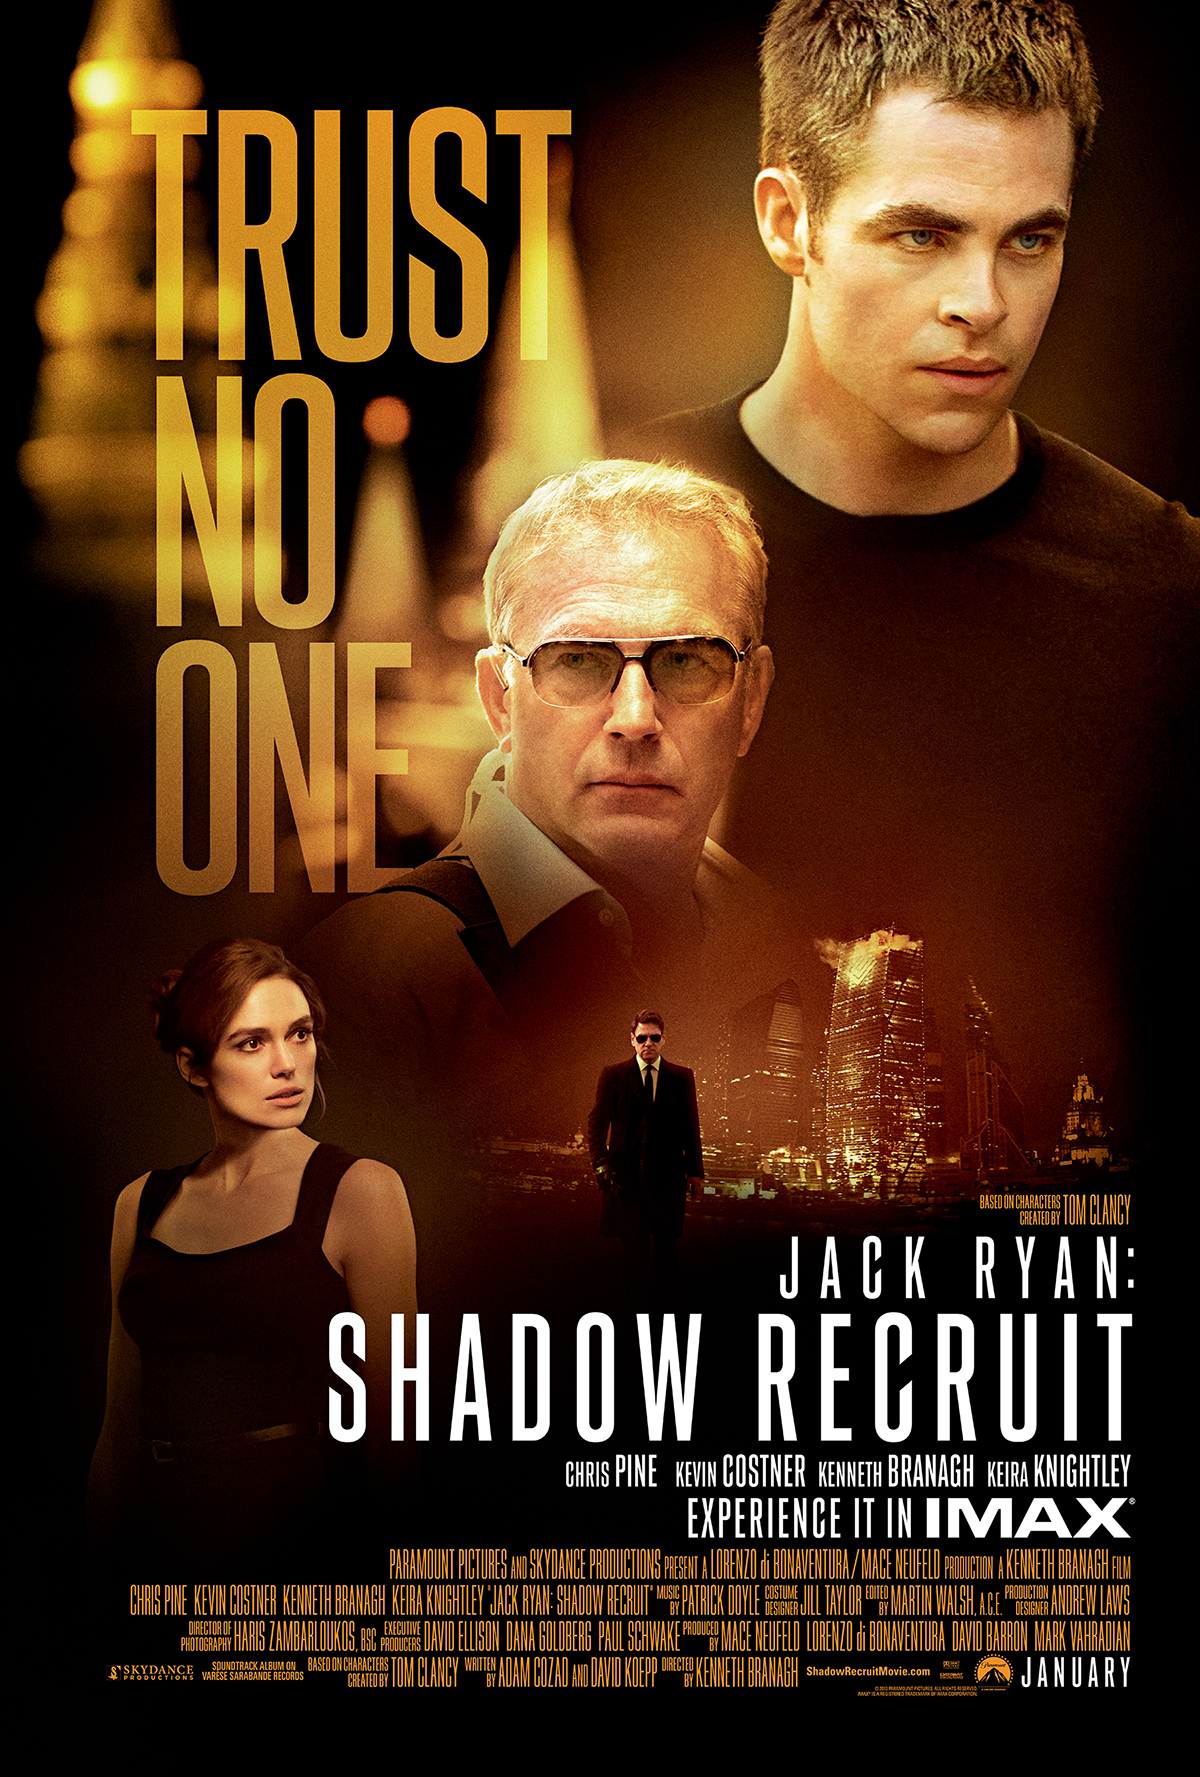 Jack Ryan: Shadow Recruit -- The IMAX Experience